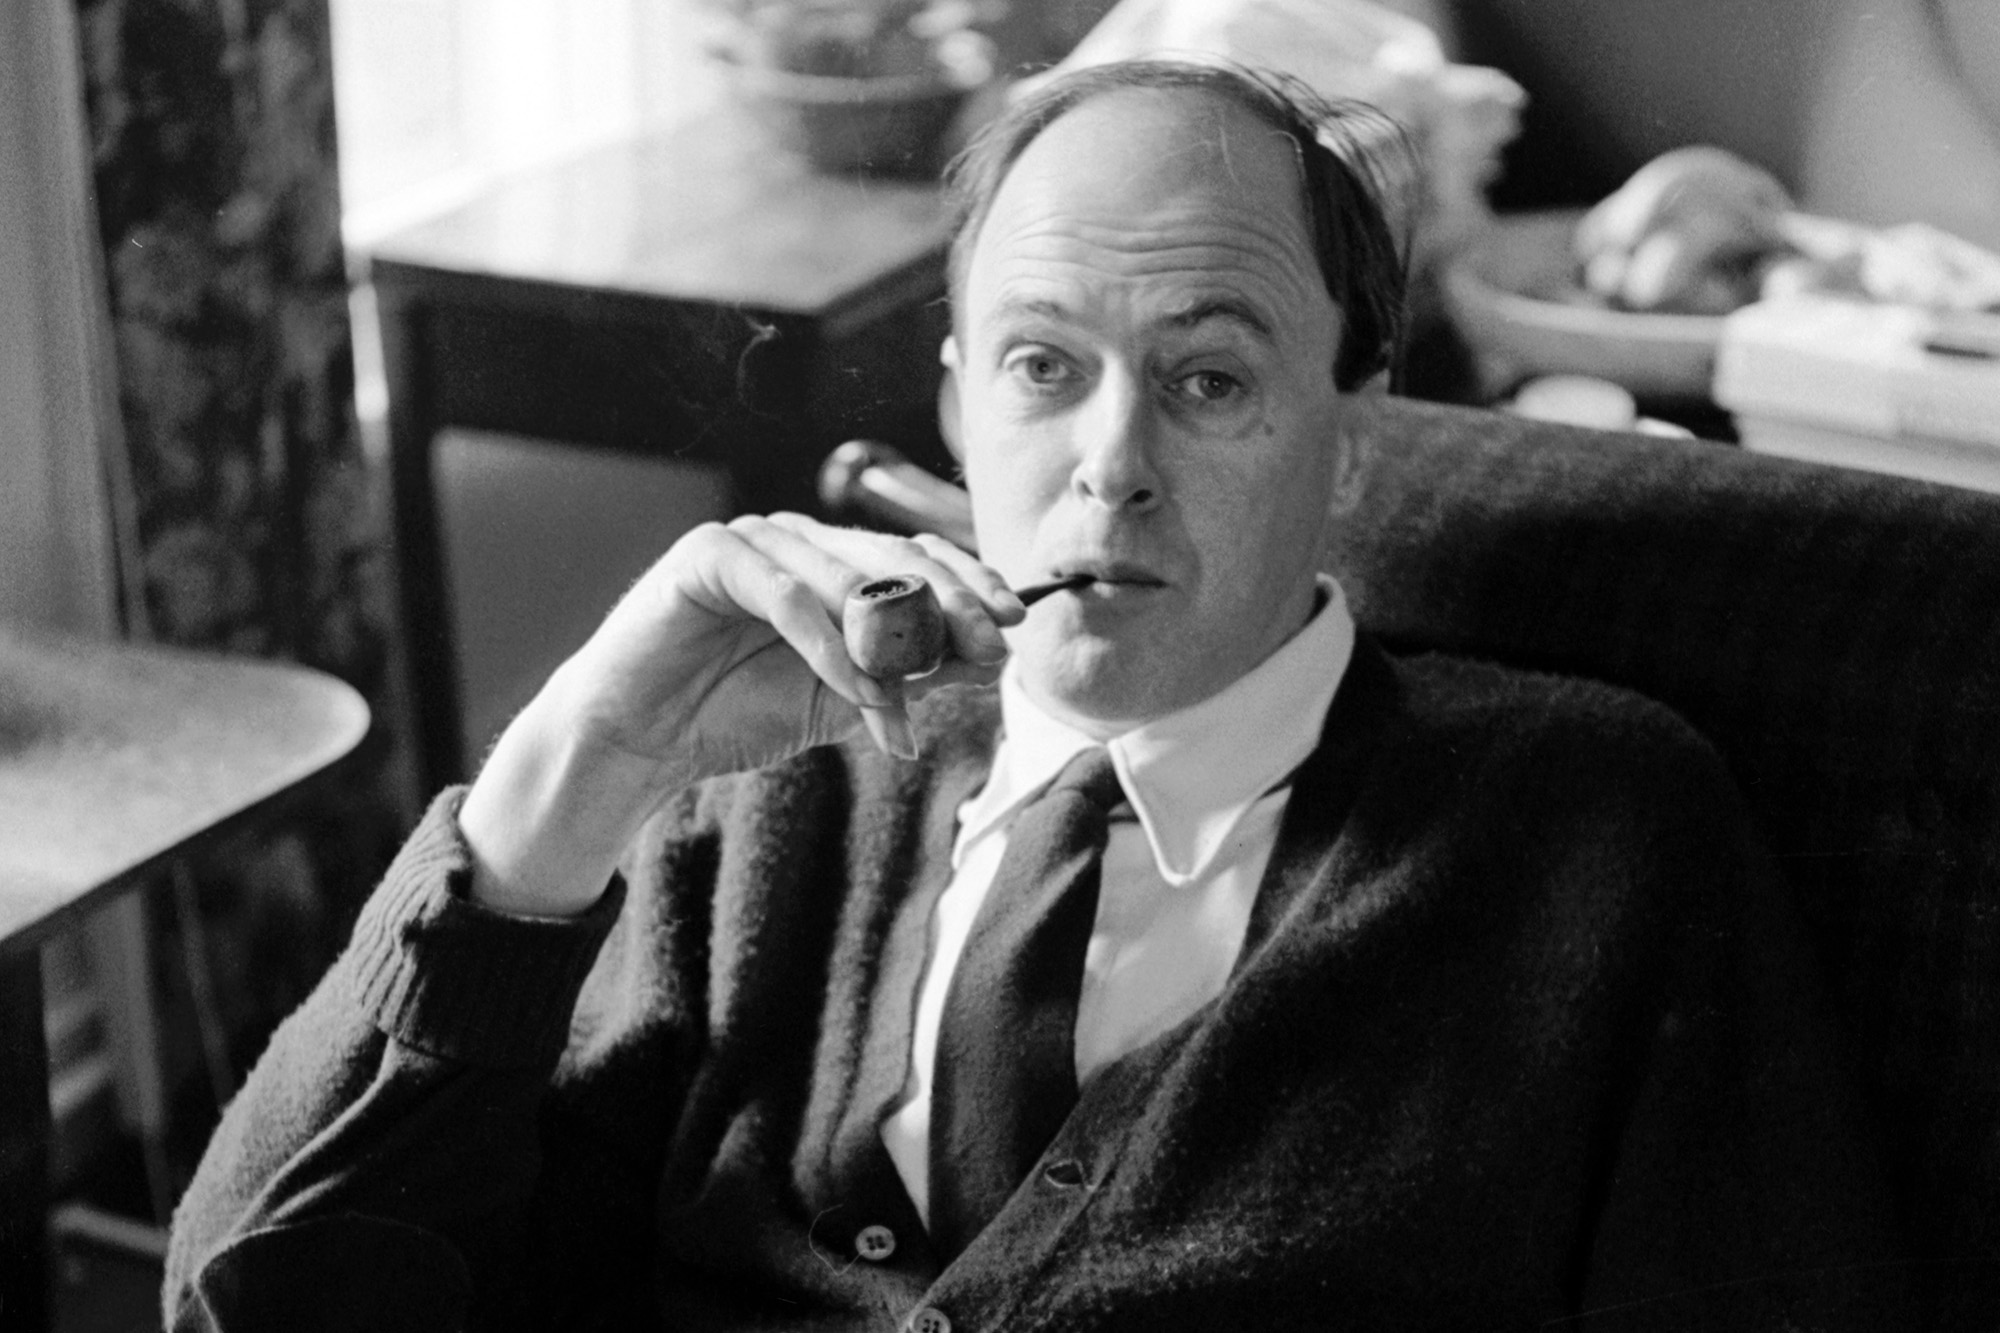 Roald Dahl's family issues apology for author's anti-Semitism